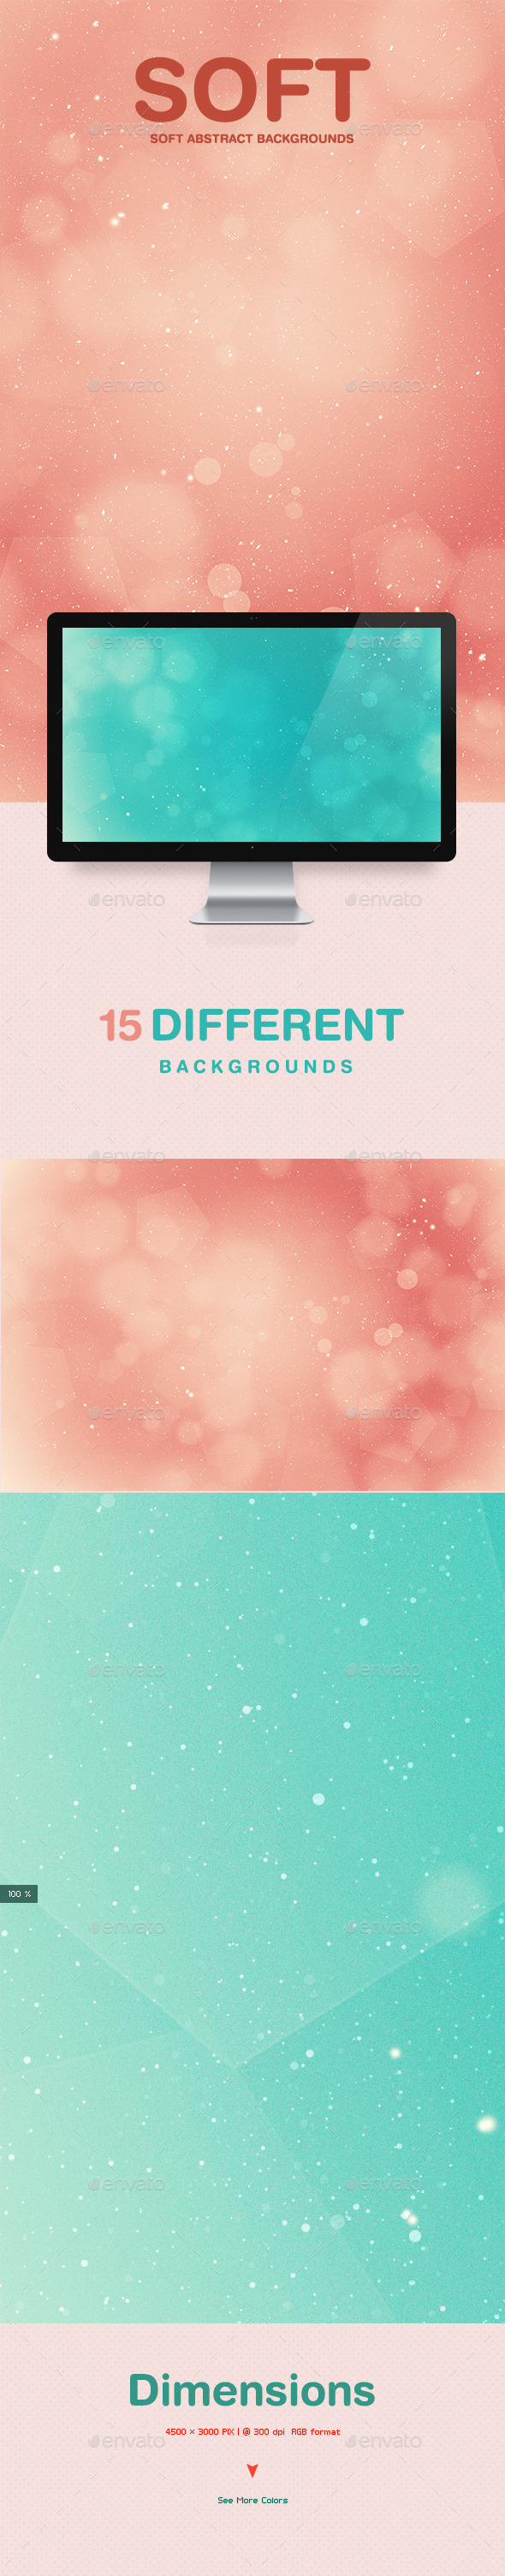 Soft Light Abstract Backgrounds